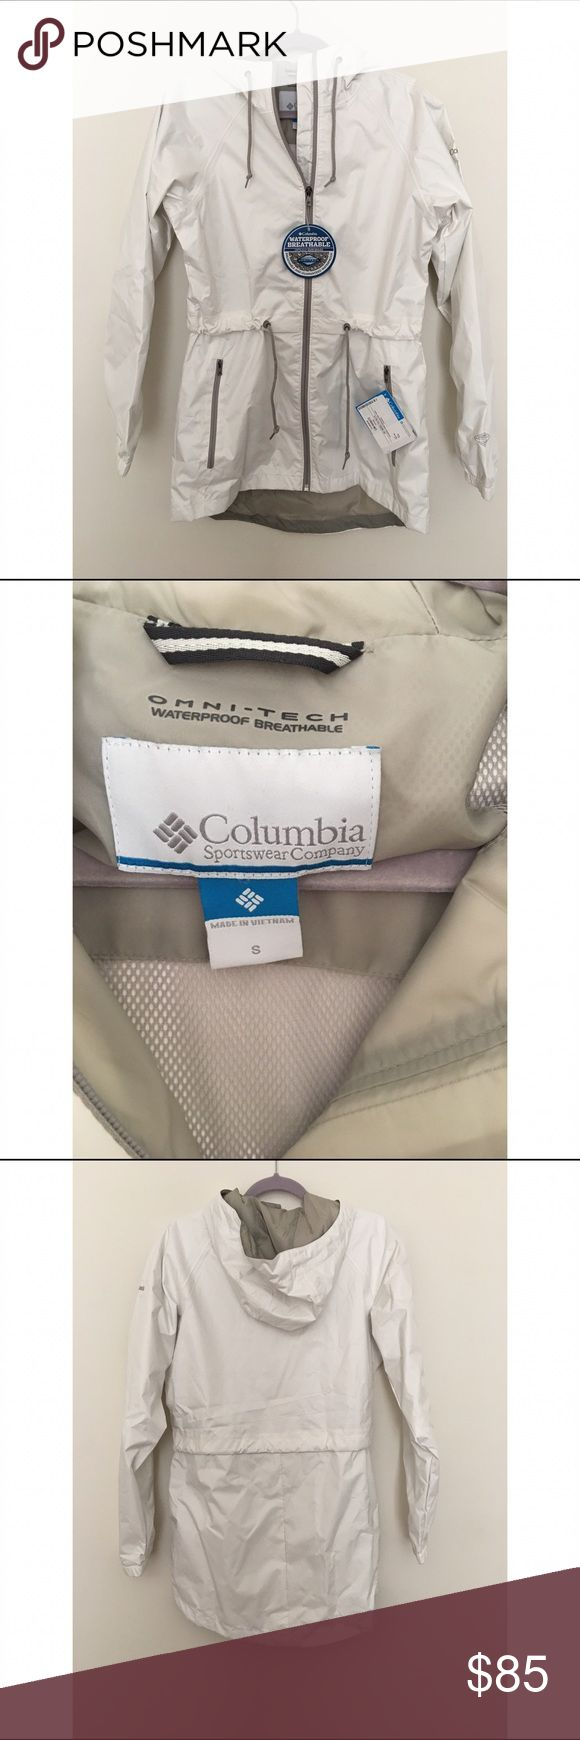 Columbia Rain Coat Brand new with tags rain jacket from Columbia. This was ordered from Marley Lilly and was not monogrammed at all. In perfect condition; was just too big for me. Color is sea salt and fits a small-medium. Does have strings to tighten at waist for a fitted look. Super cute and perfect for the upcoming spring weather! ☔️ Columbia Jackets & Coats